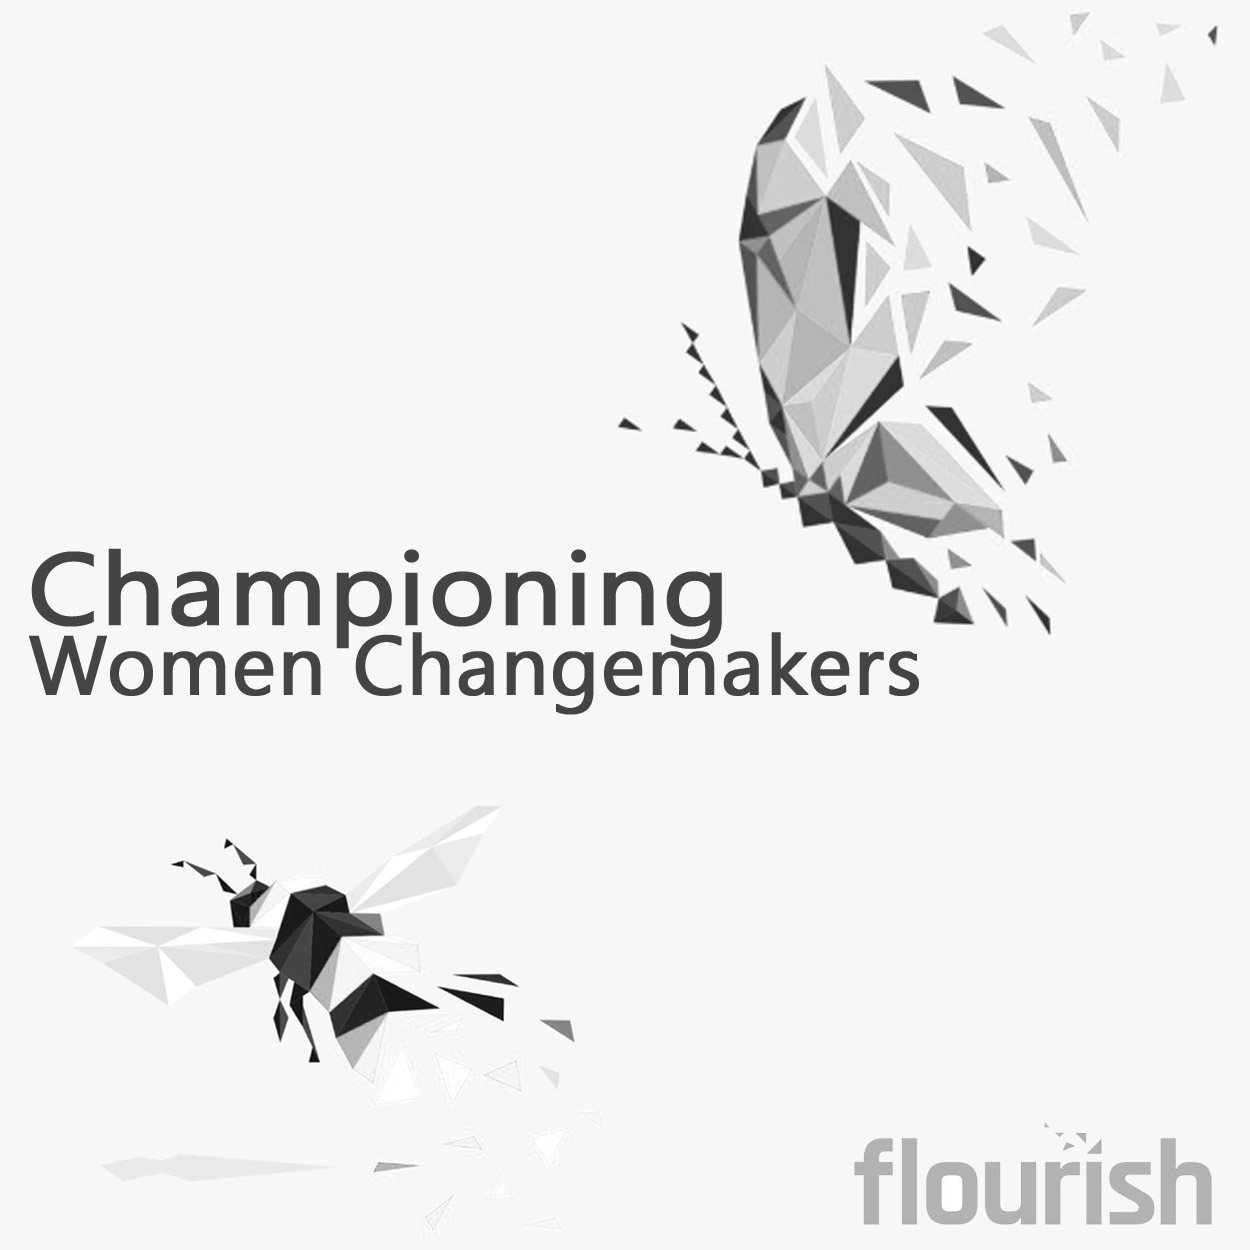 a black and white square image. to the top left is a modern graphic depicting a butterfly, made up of geometric shapes. The bottom left of the square is a bee, graphically designed in the same style of geometric shapes. In the middle and left justified, above the bee is the words 'Championing women changemakers and the bottom right, under the butterfly is a logo. The logo is the word 'Flourish.